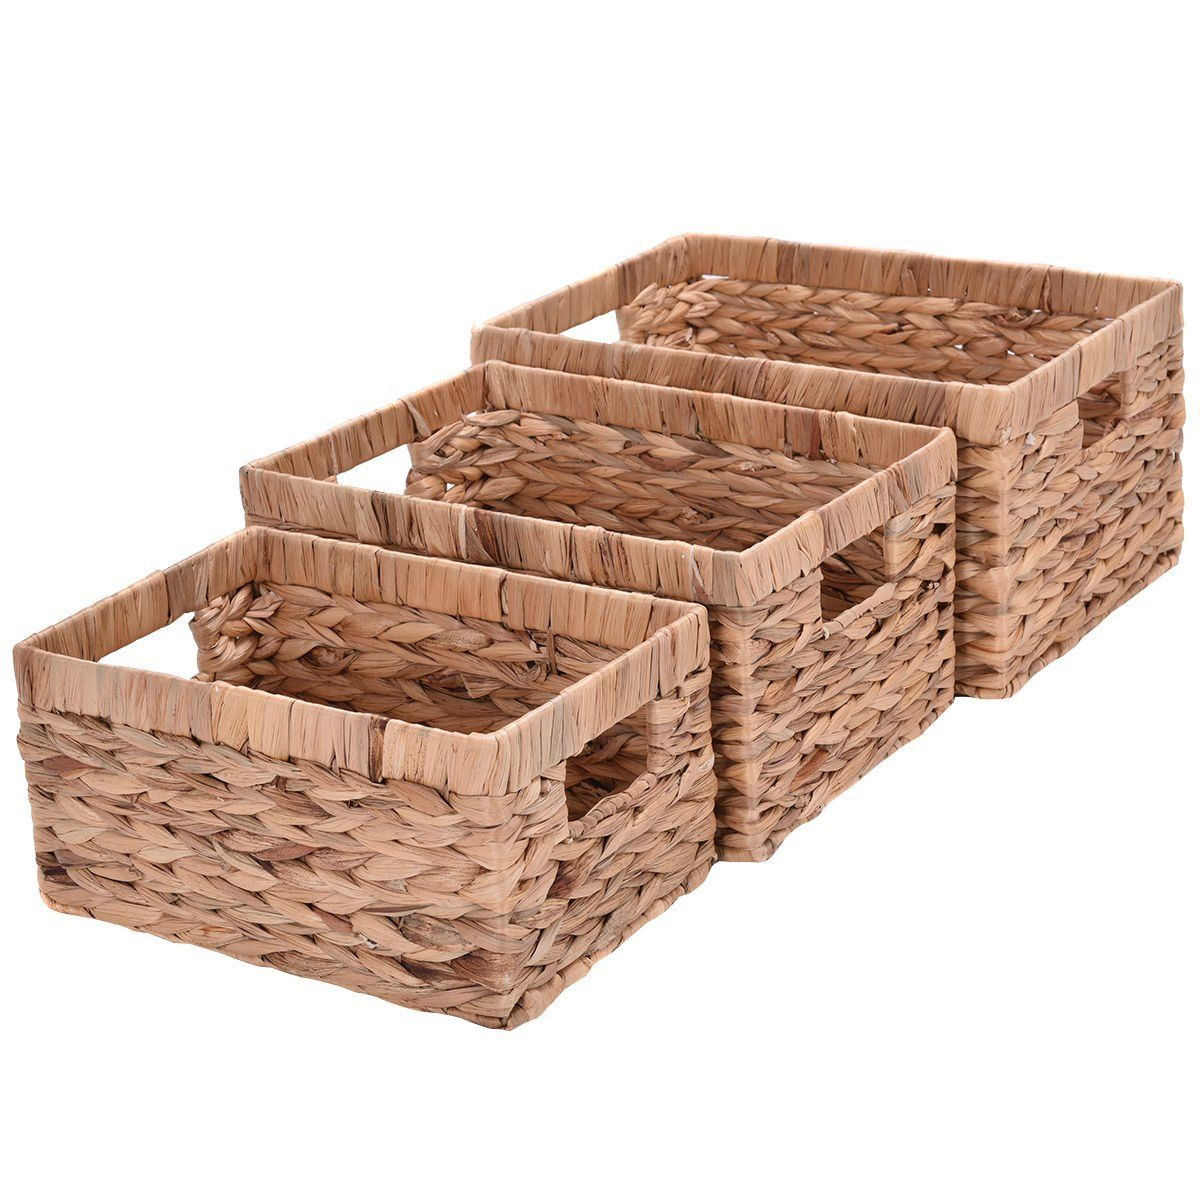 Amazon.com: Giantex Set of 3 Hand Knitting Rectangle Storage Baskets Steel Frame Organizer (Set of 3 Without Handel): Home & Kitchen